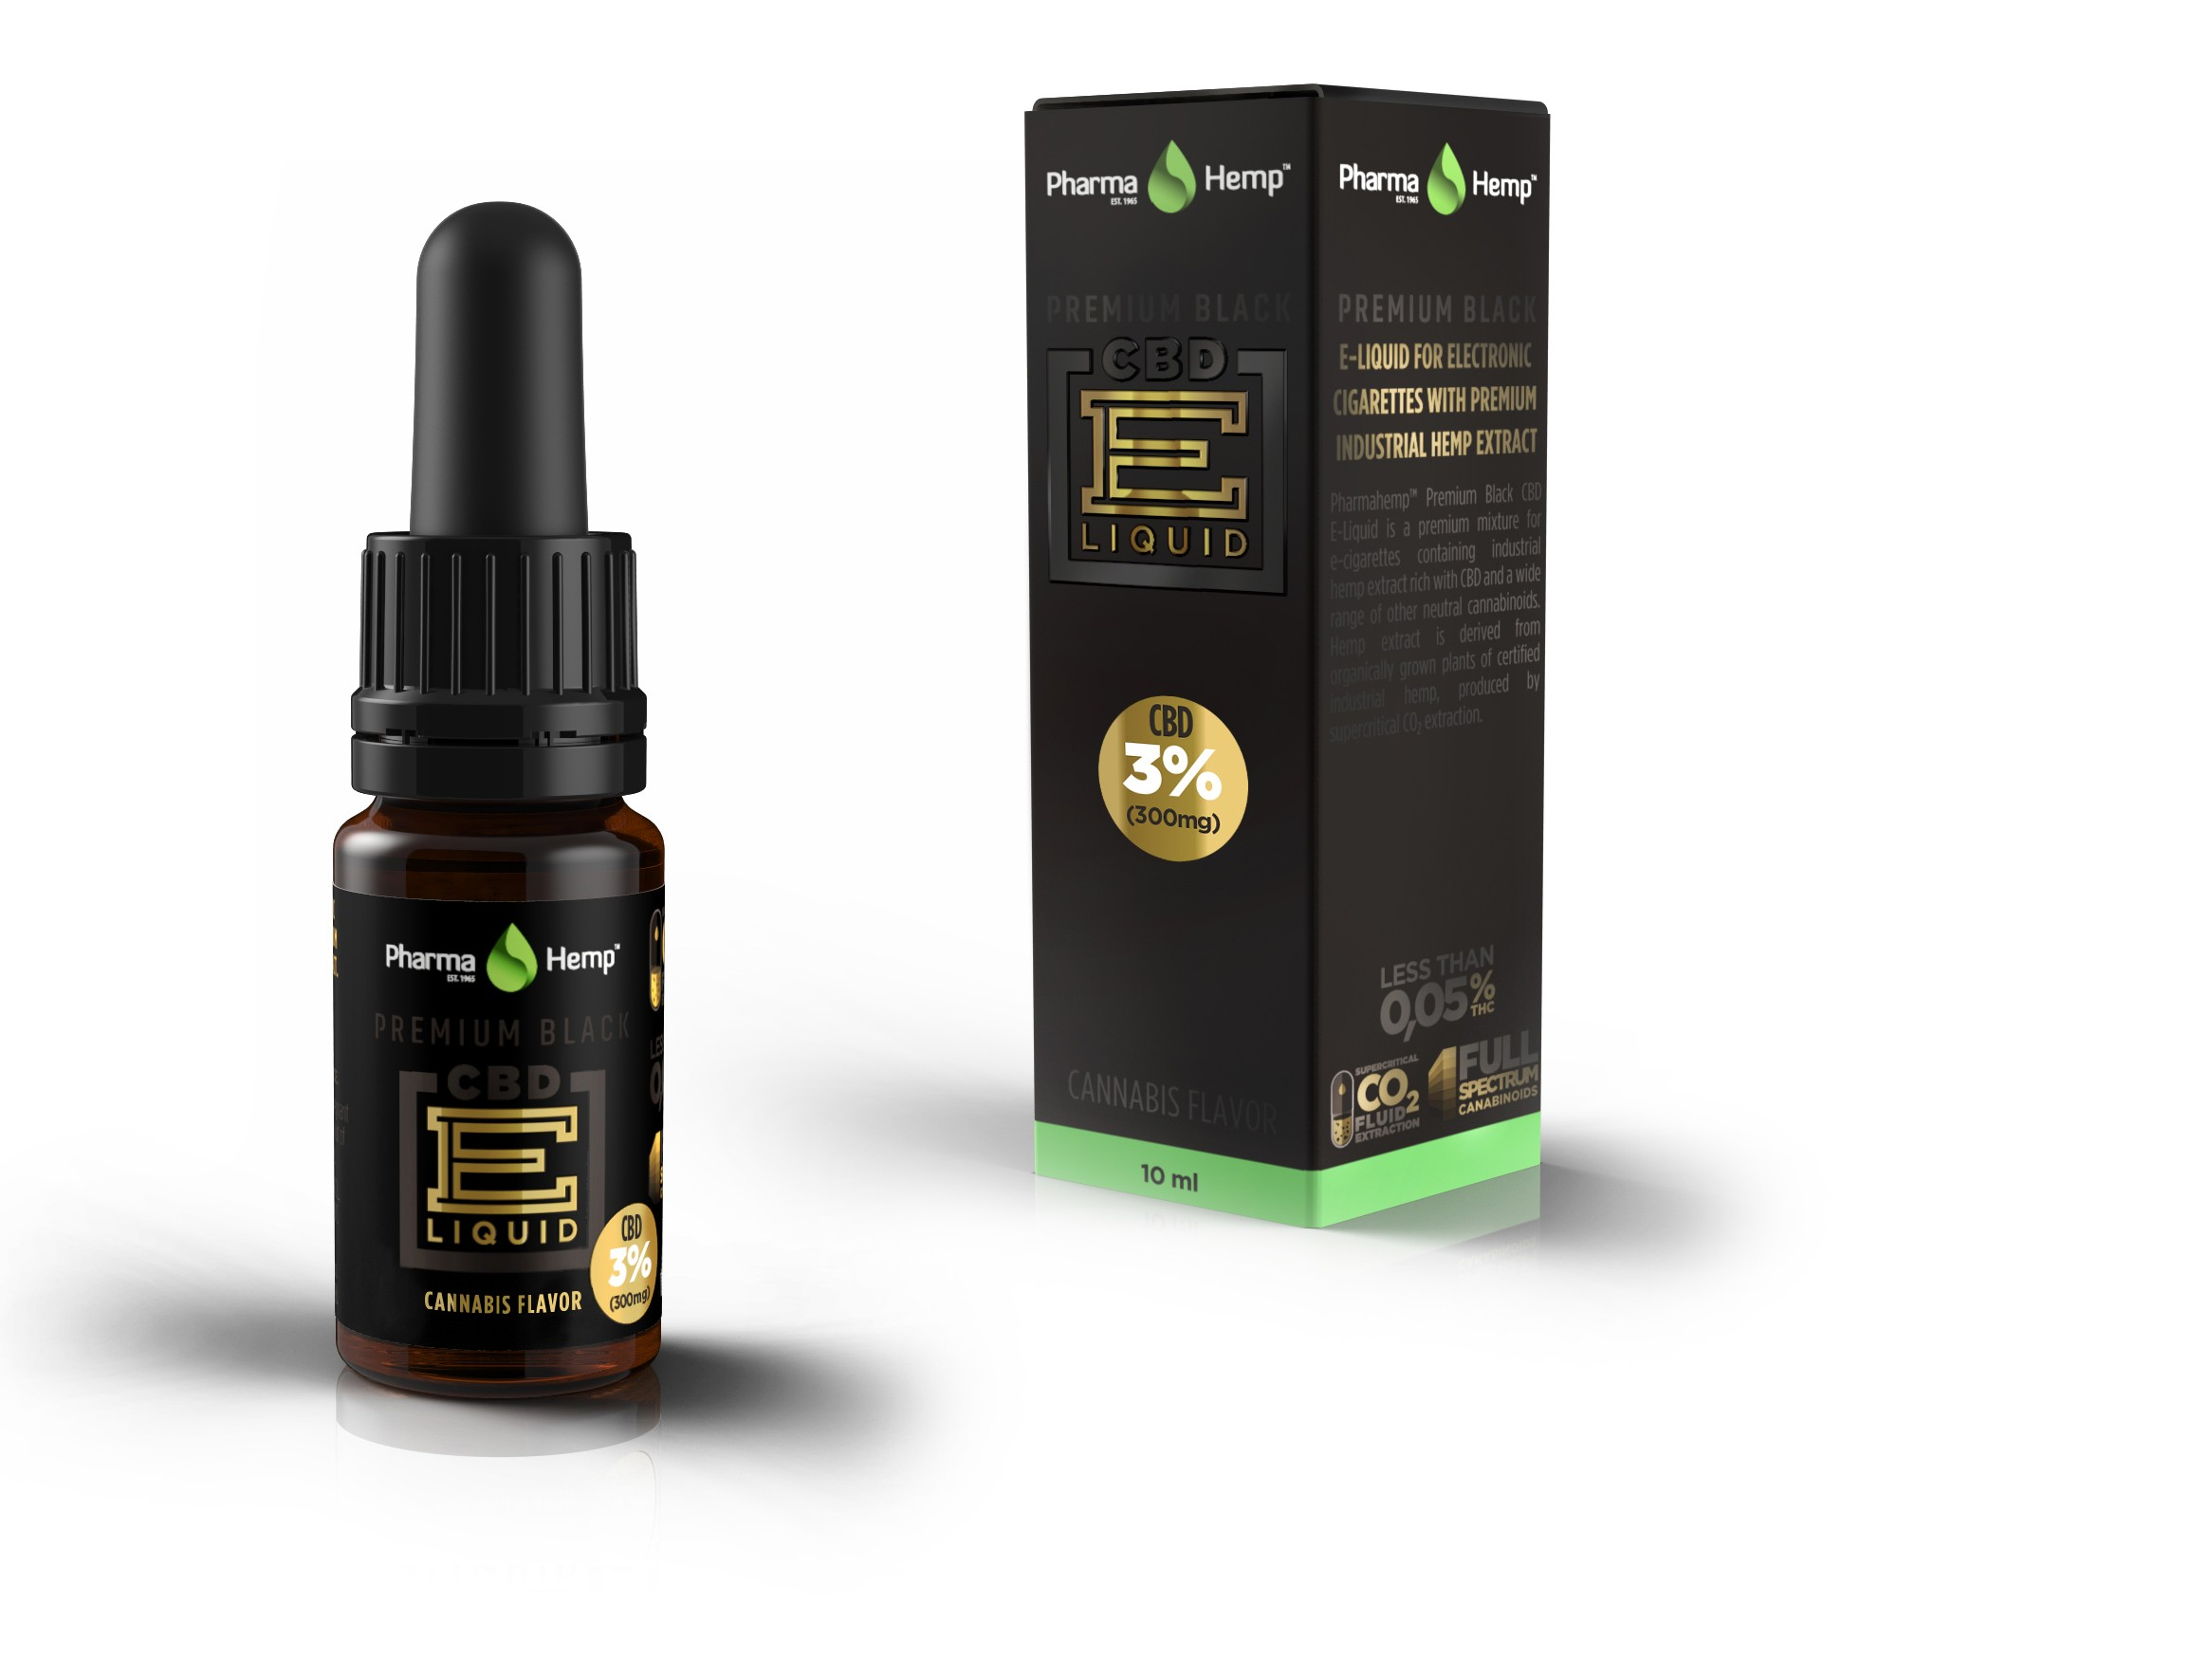 PHARMA HEMP - BLACK PREMIUM - CBD ELIQUID 10ml - 3% / 300mg - (HEMP)